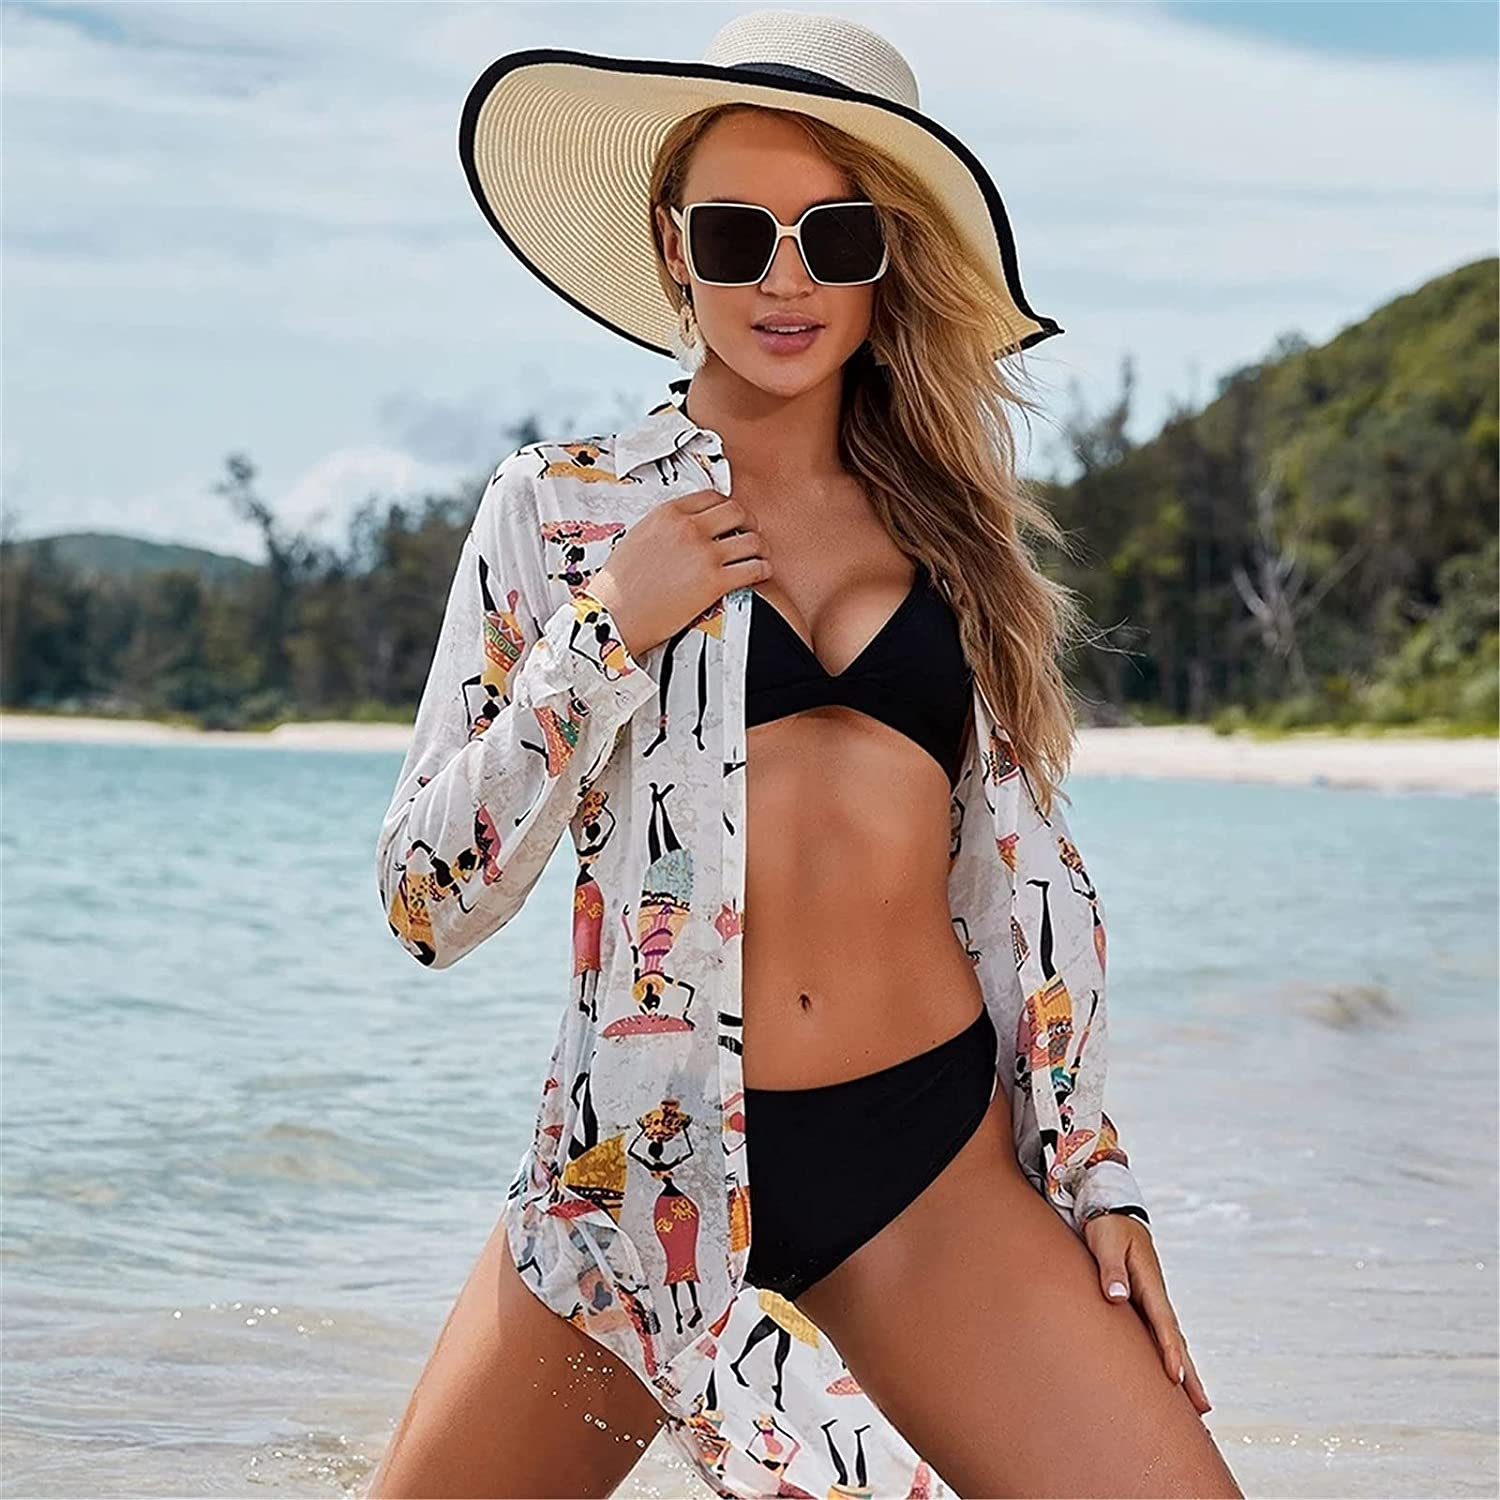 Beach Cover Up Sexy Bikini Cover Up Women Beach Cover Up Long Sleeve Blouse Outer Sunscreen Cover Ups Multi-purpose (Color : White, Size : One size)